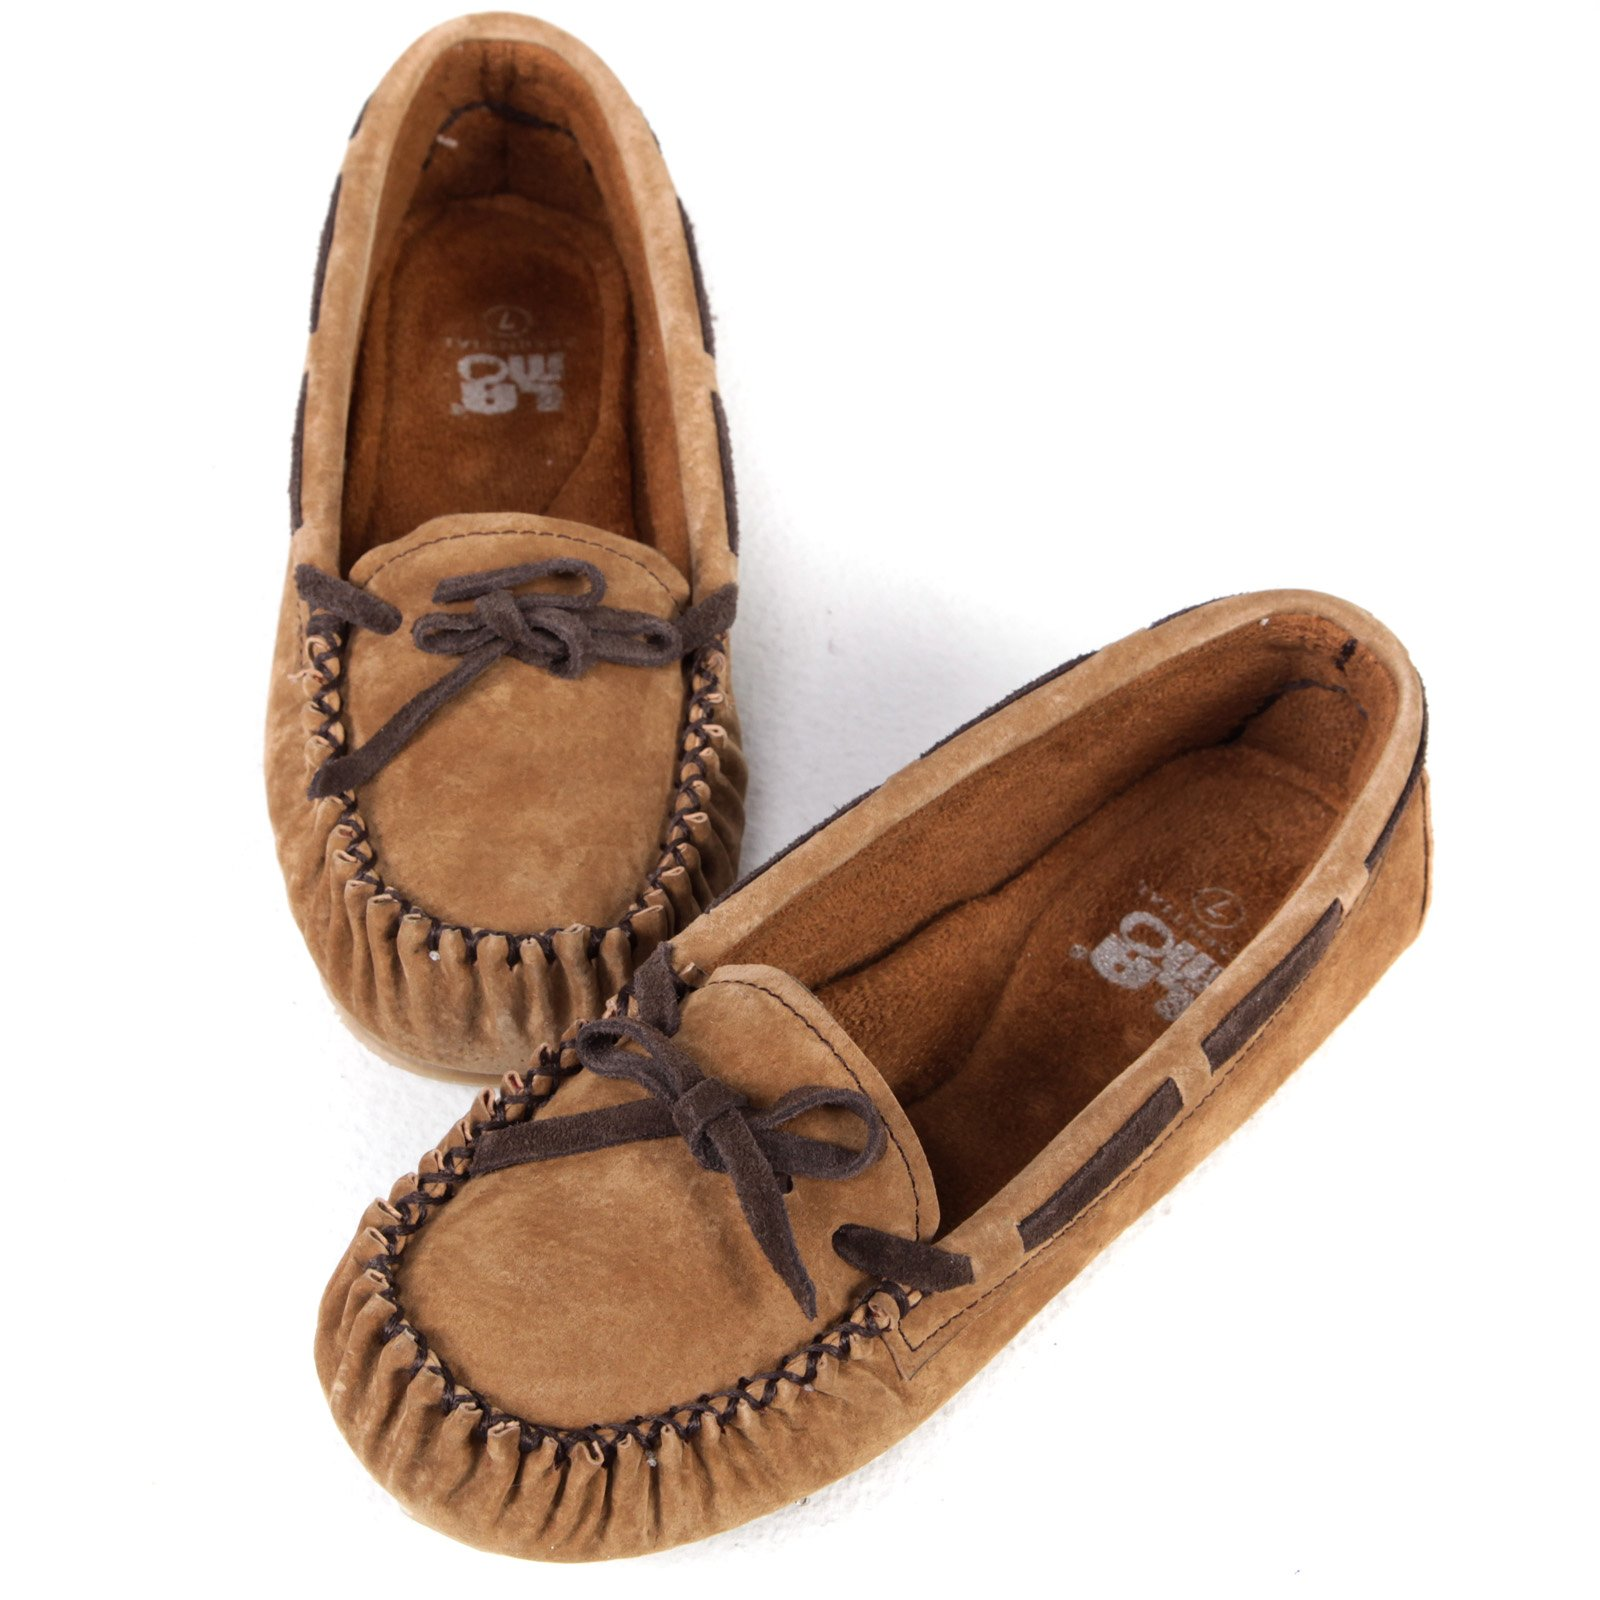 Lamo Womens Sabrina Moccasin - Chestnut - Womens Moccasins at Moccasins